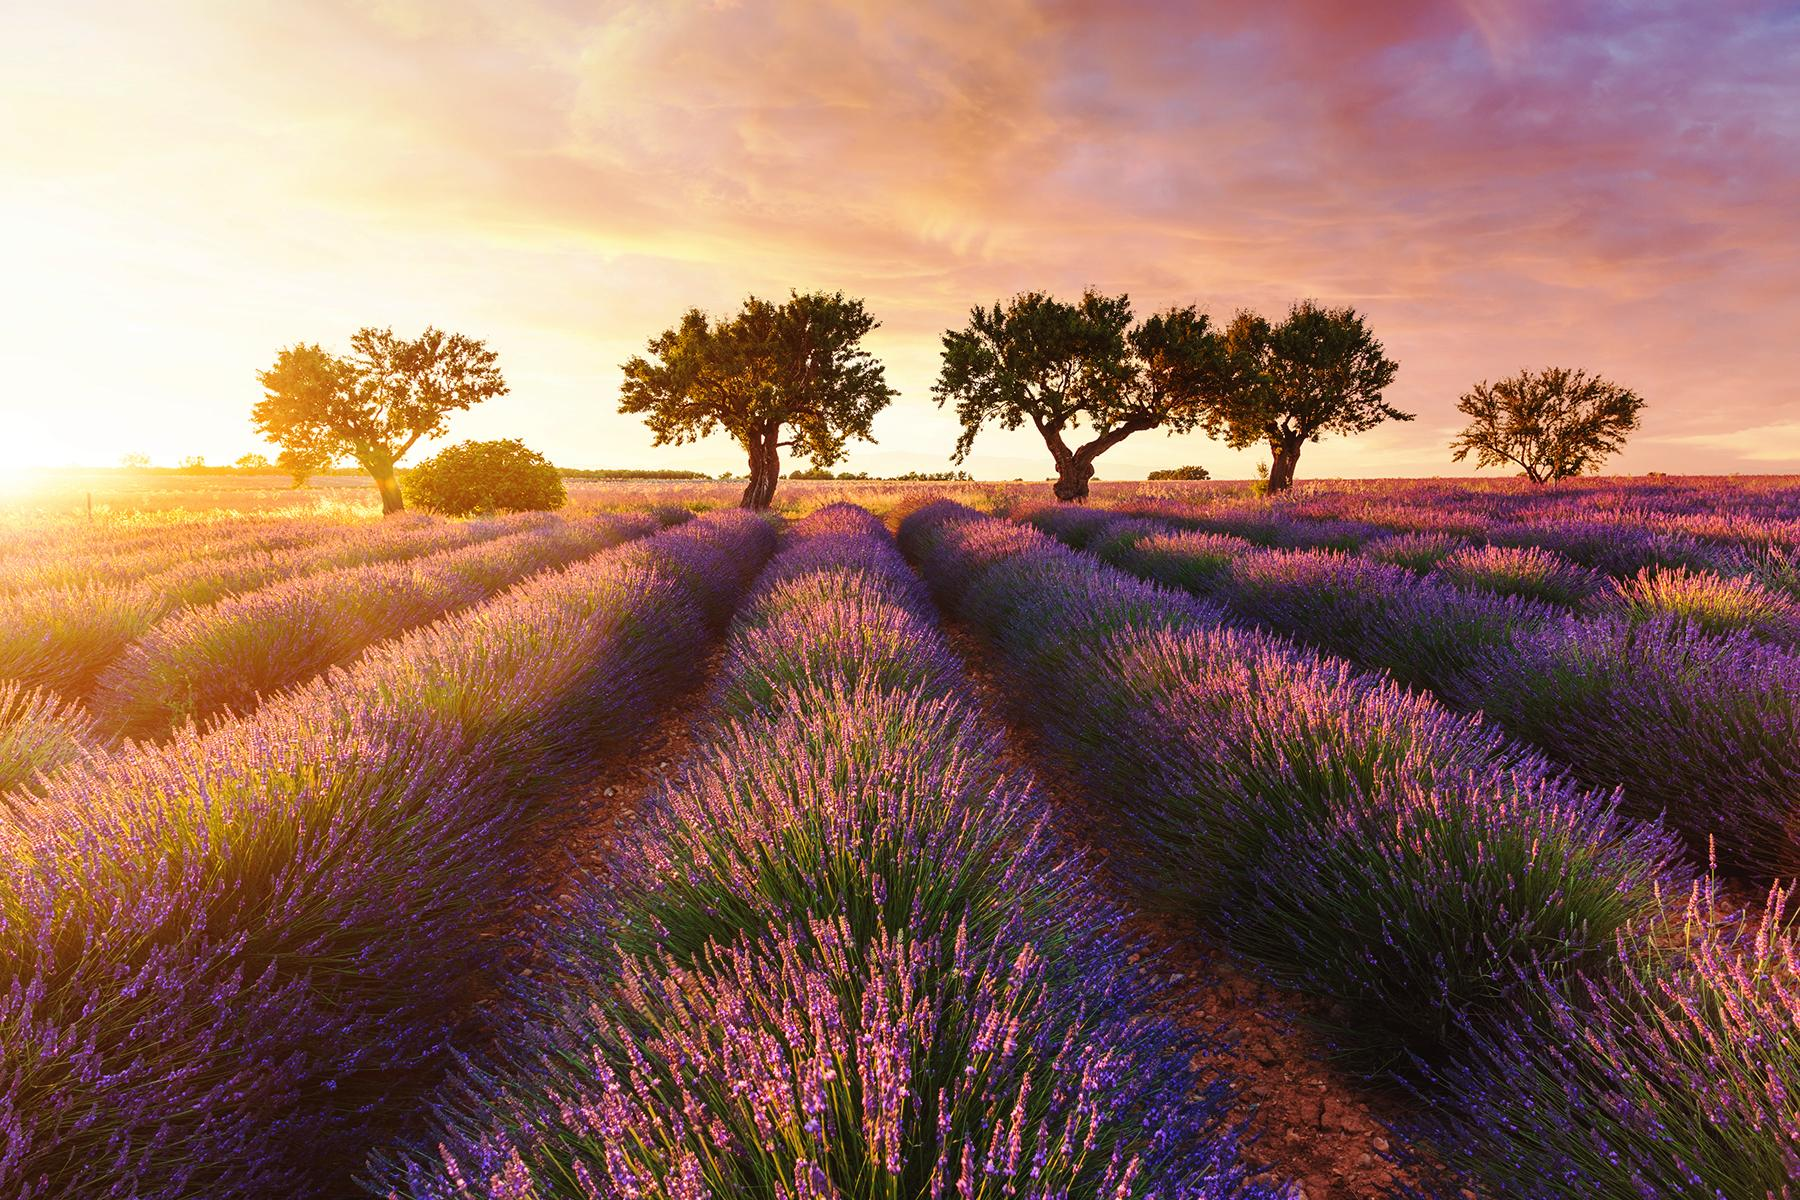 01_FamilyBackdrops__TheFrenchLavenderField_iStock-965366264